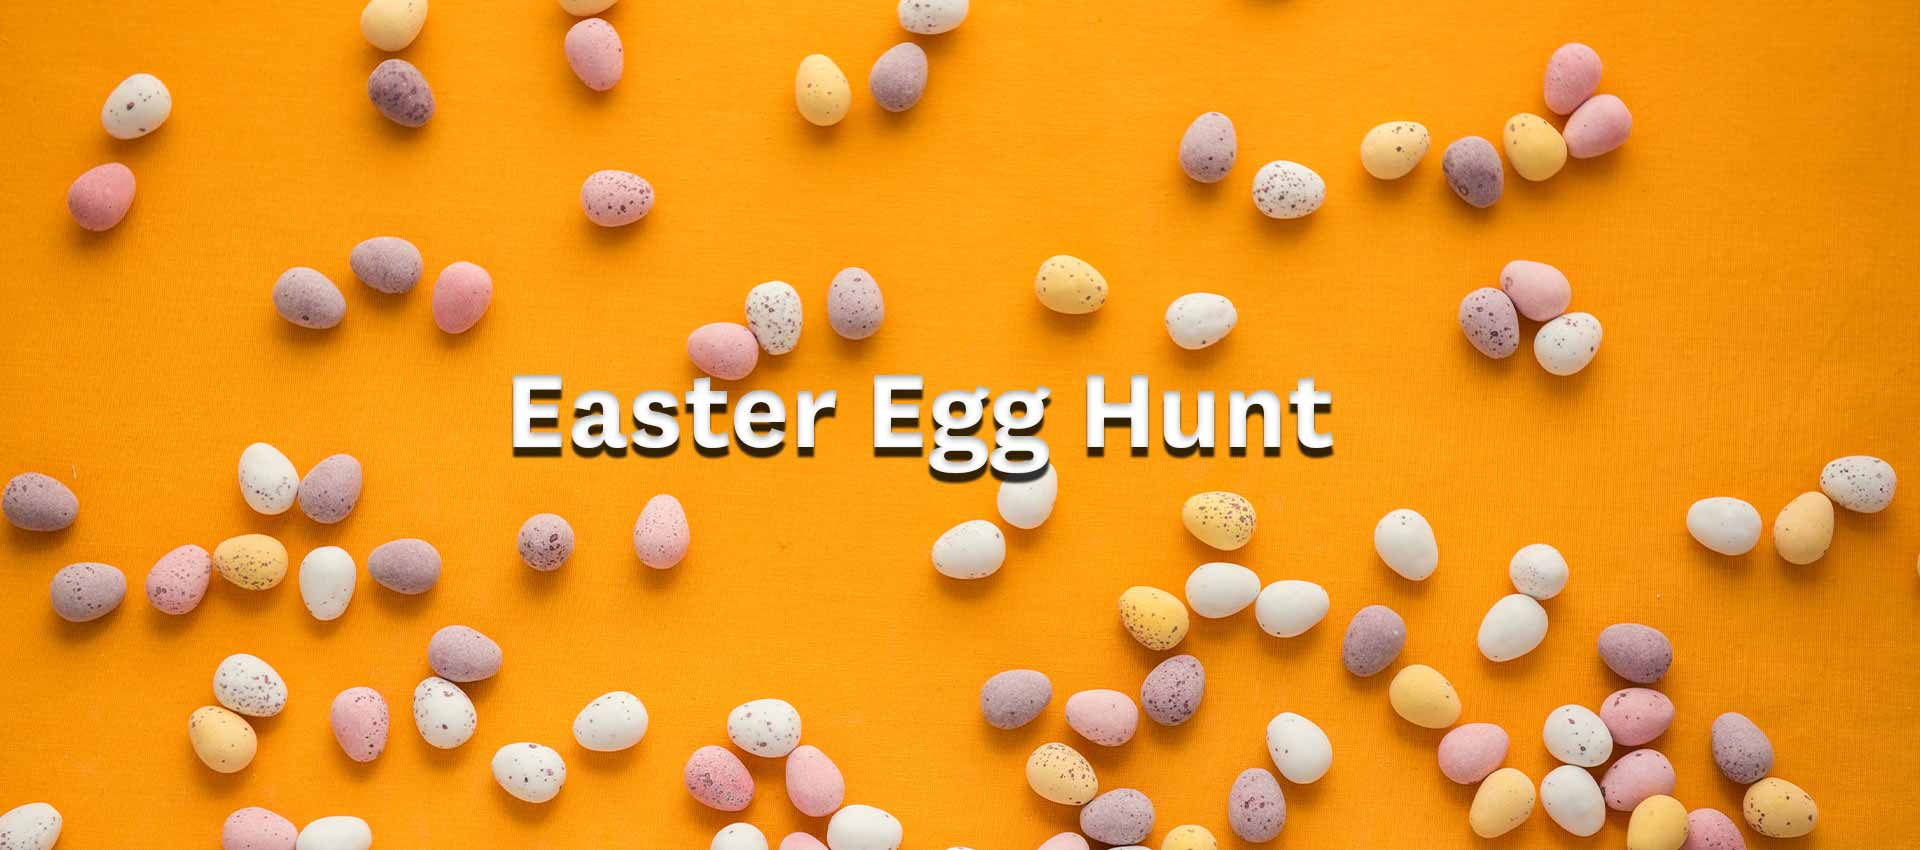 Easter eggs scattered across a yellow background. Event title: Easter Egg Hunt